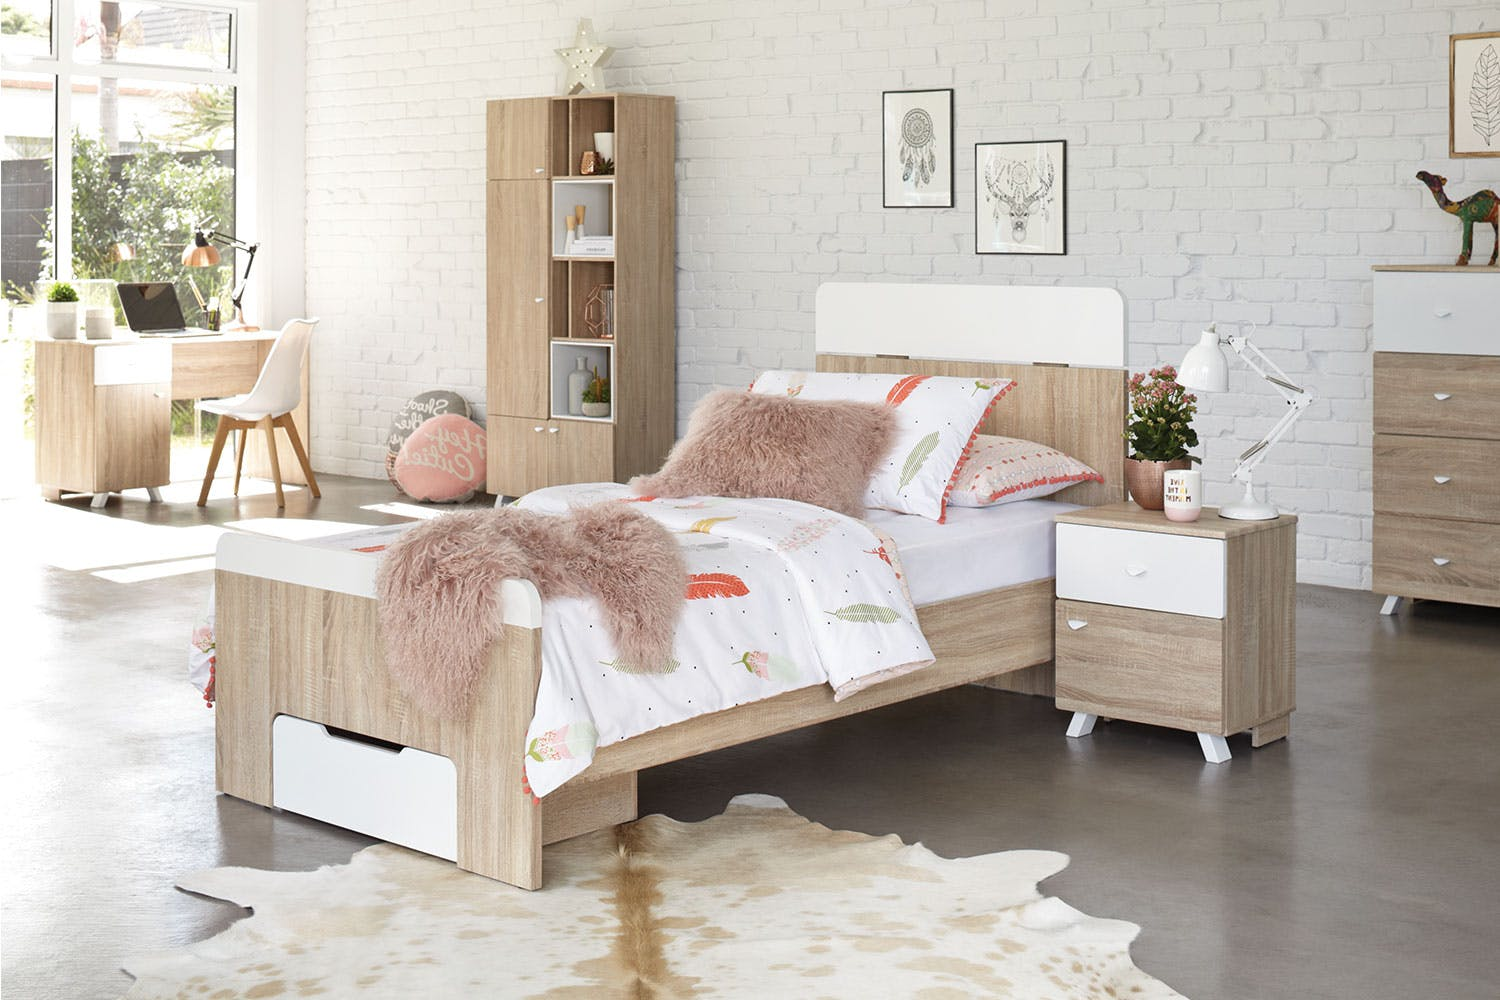 Maali King Single Bed Frame by Stoke Furniture. Maali King Single Bed Frame by Stoke Furniture   Harvey Norman New